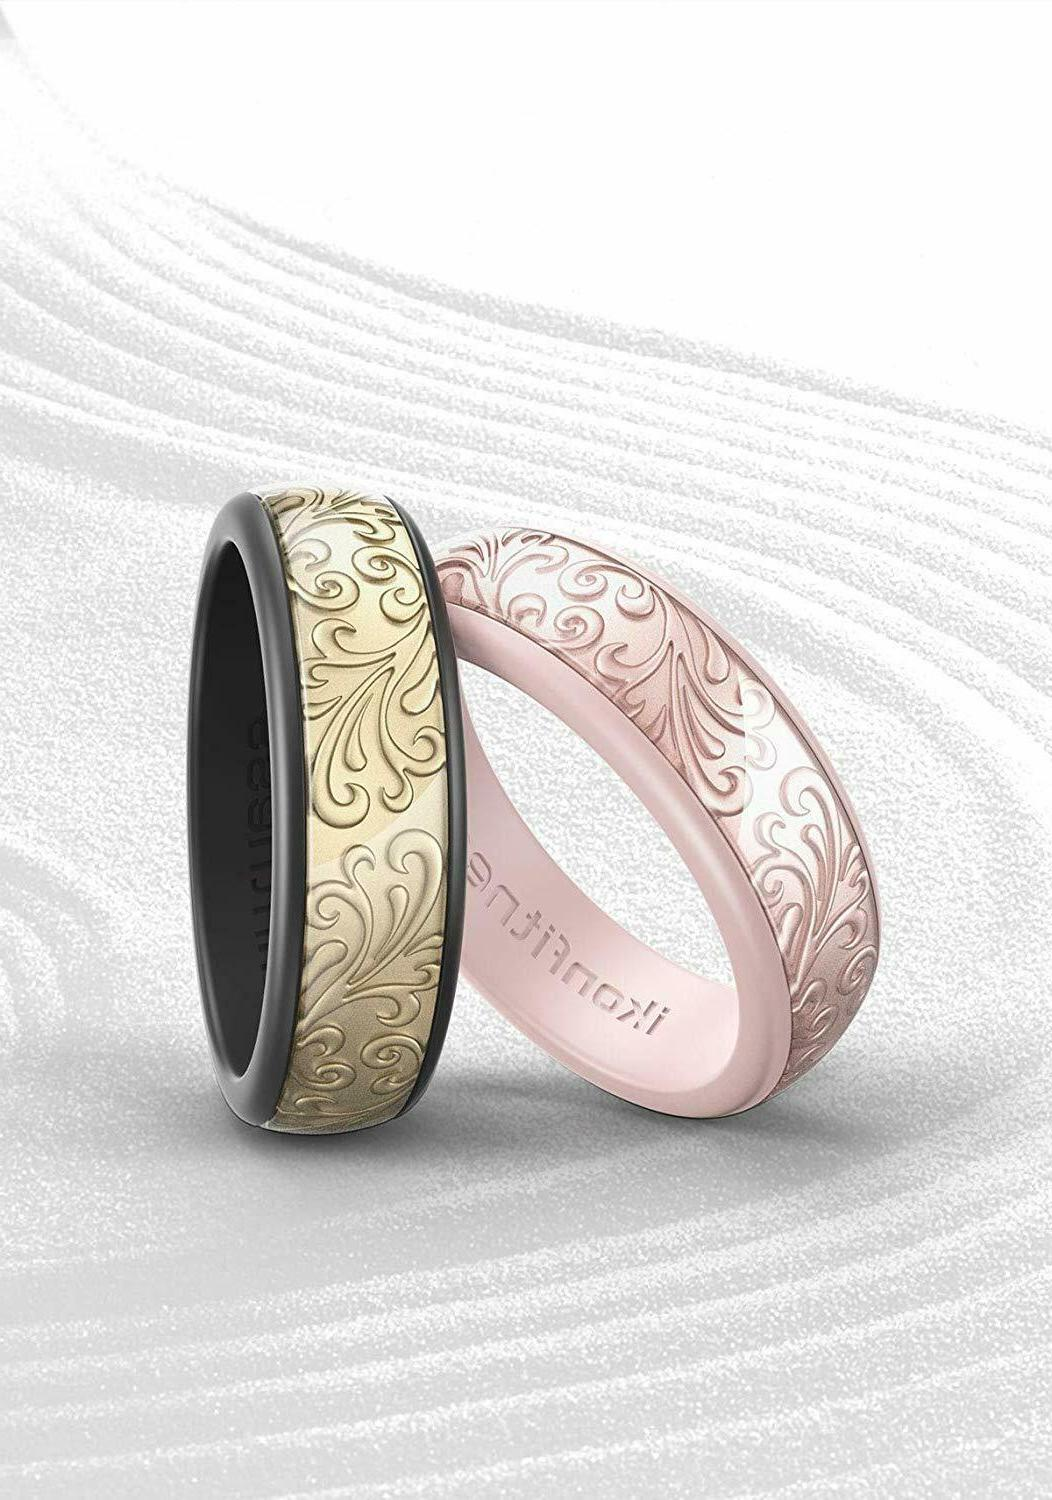 Men Silicone Ring Rubber Sculptured Flower Flexible Rings